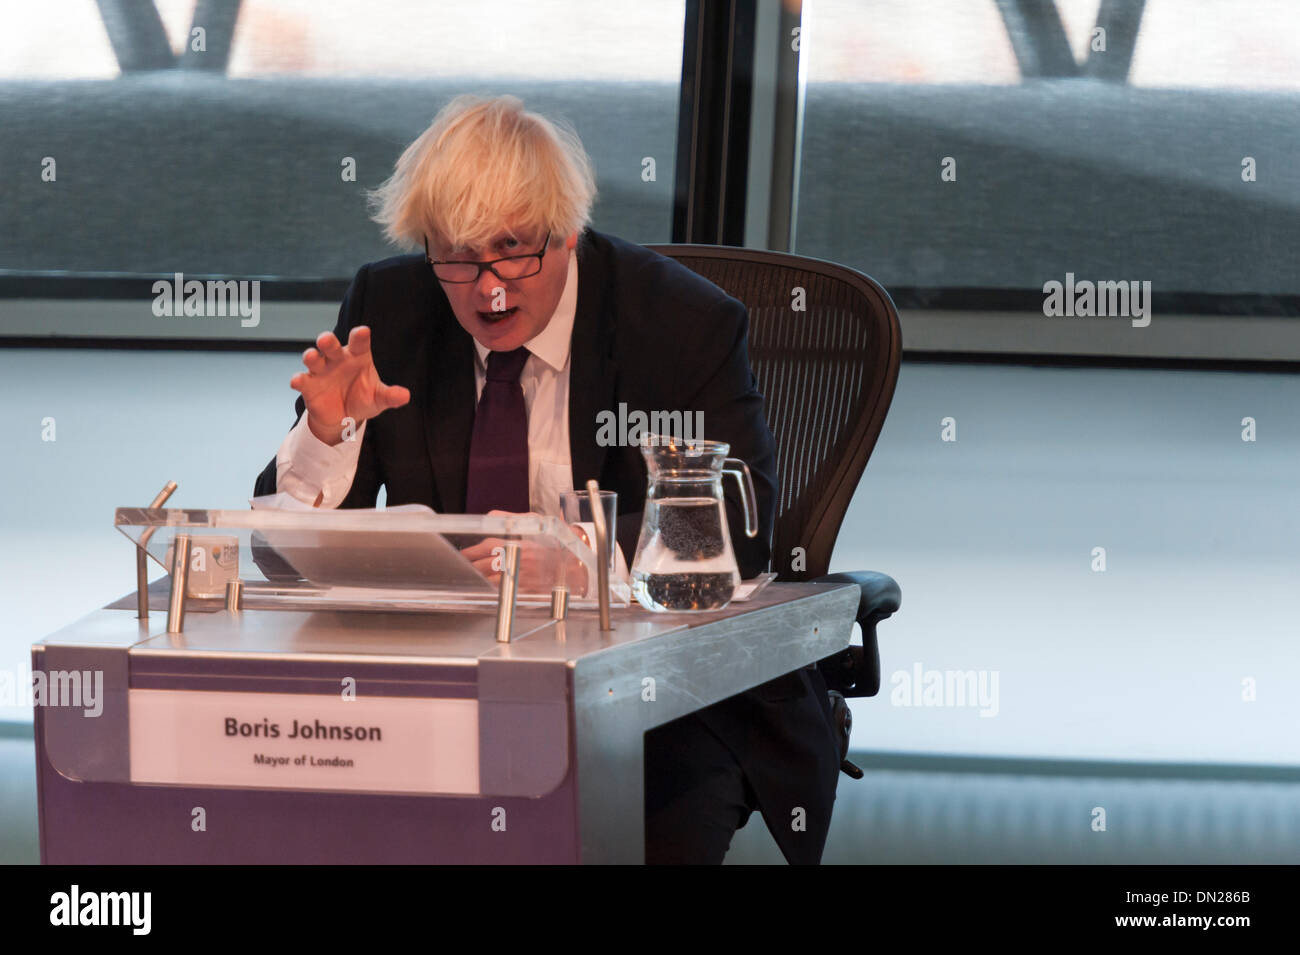 London, UK. 18th December, 2013. Boris Johnson attempted to answer questions on several issues at the Mayor's Question Time at City Hall, London, including safer cycling, fuel poverty, tackling FGM and his recent IQ test on LBC. Credit:  Lee Thomas/Alamy Live News - Stock Image